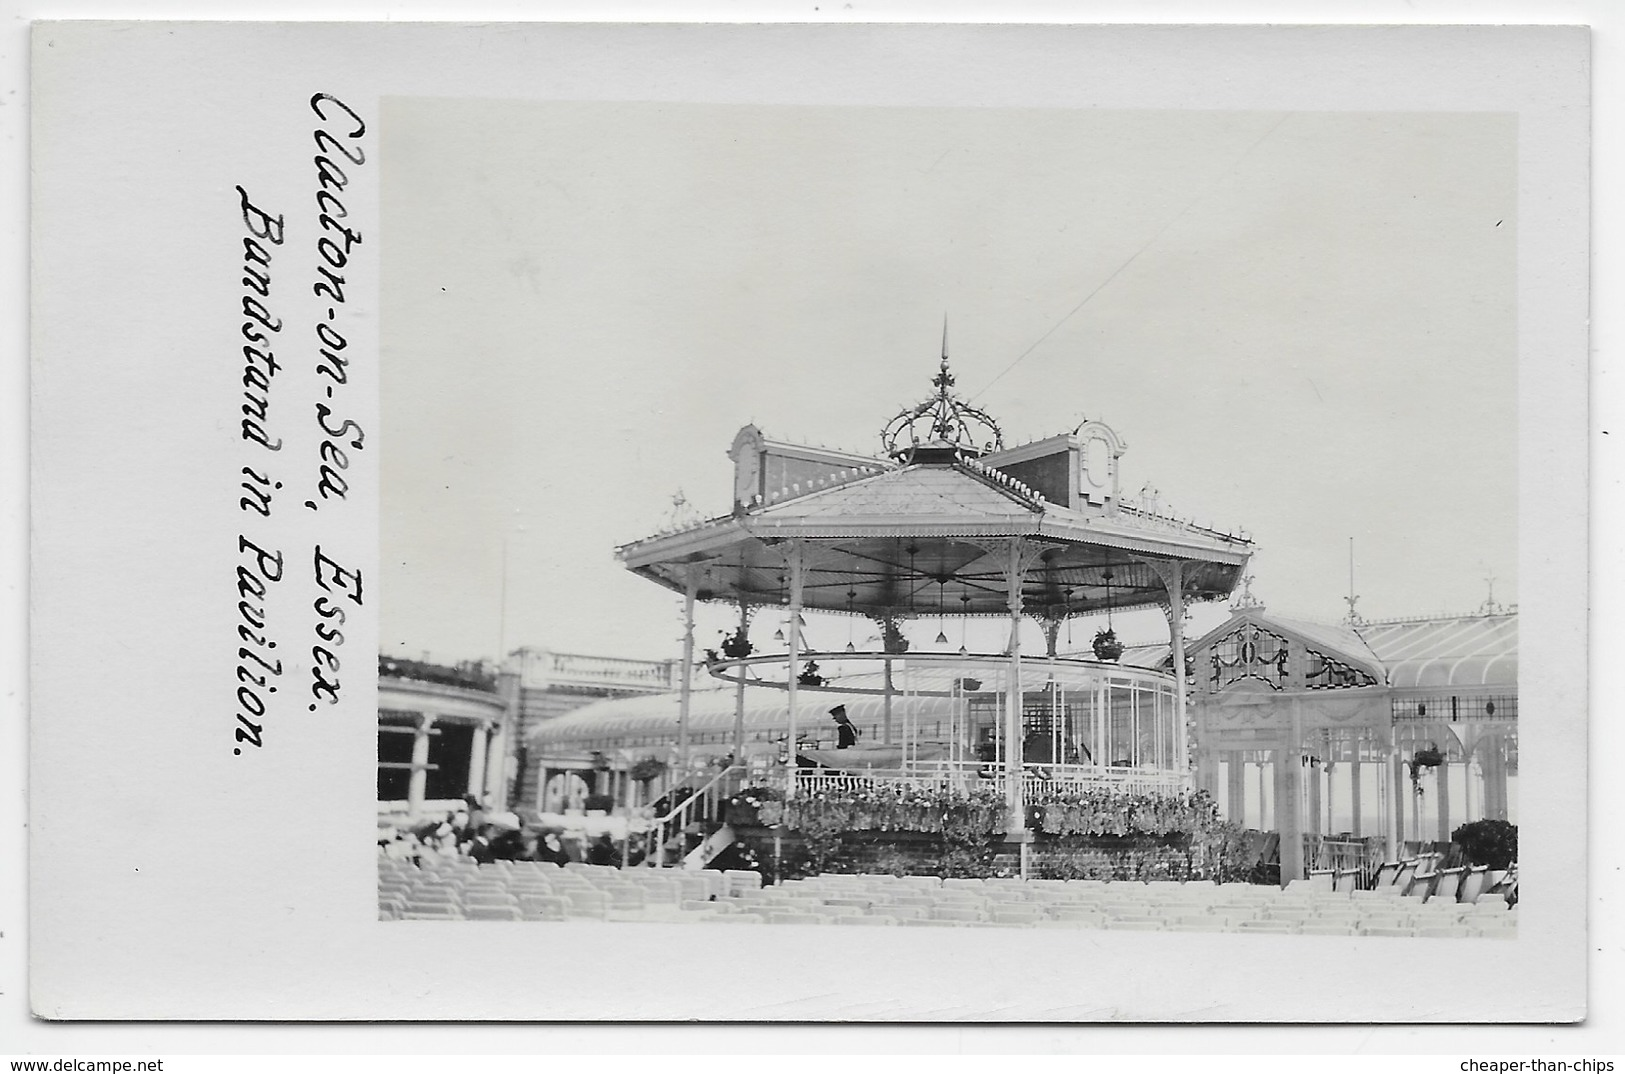 Clacton-on-Sea - Bandstand In Pavilion - Clacton On Sea